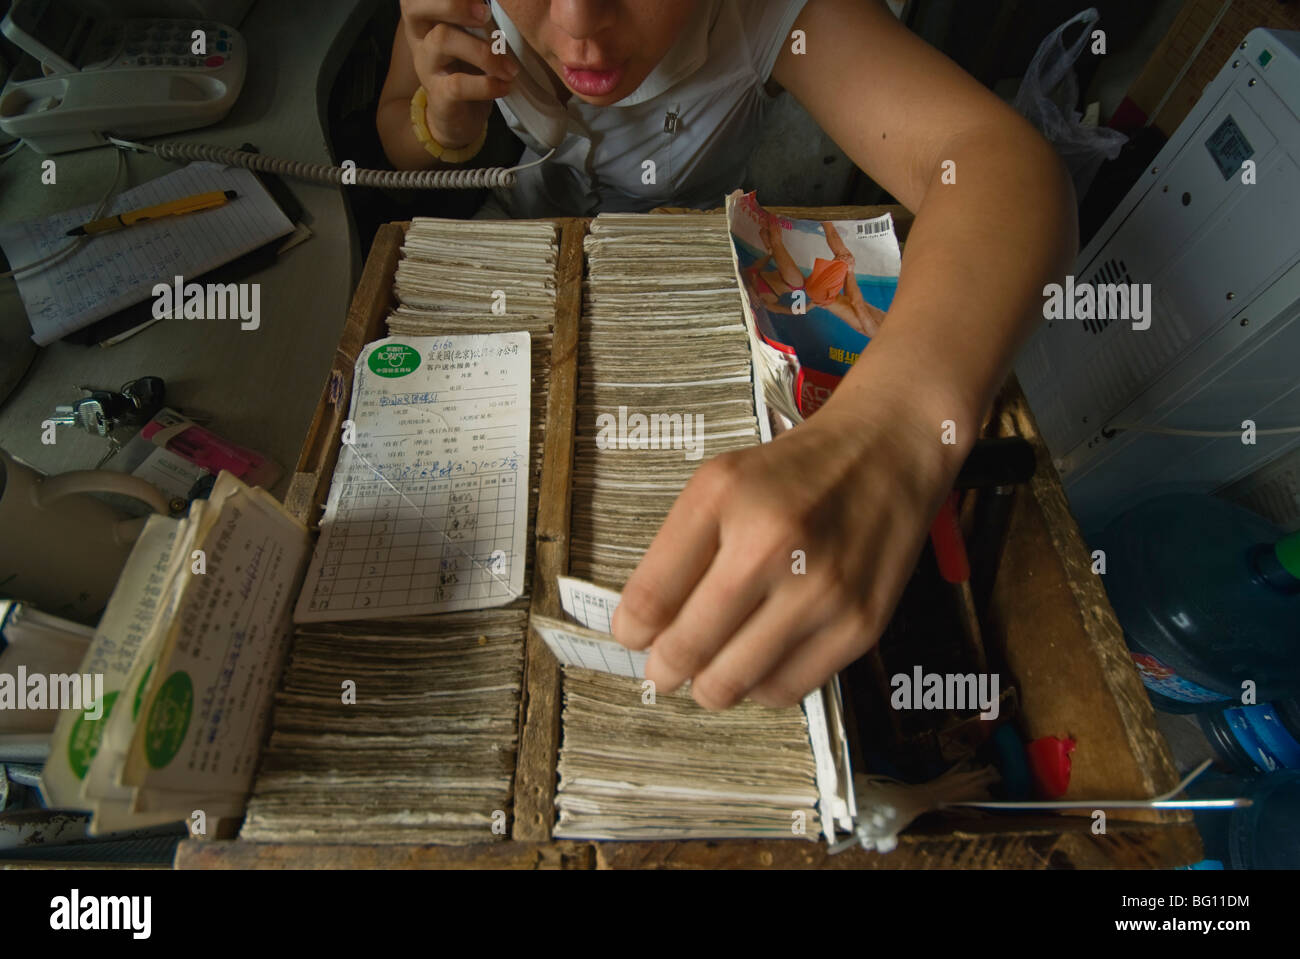 a girl on the phone taking orders for water deliver in Beijing, as she scans through index cards - Stock Image